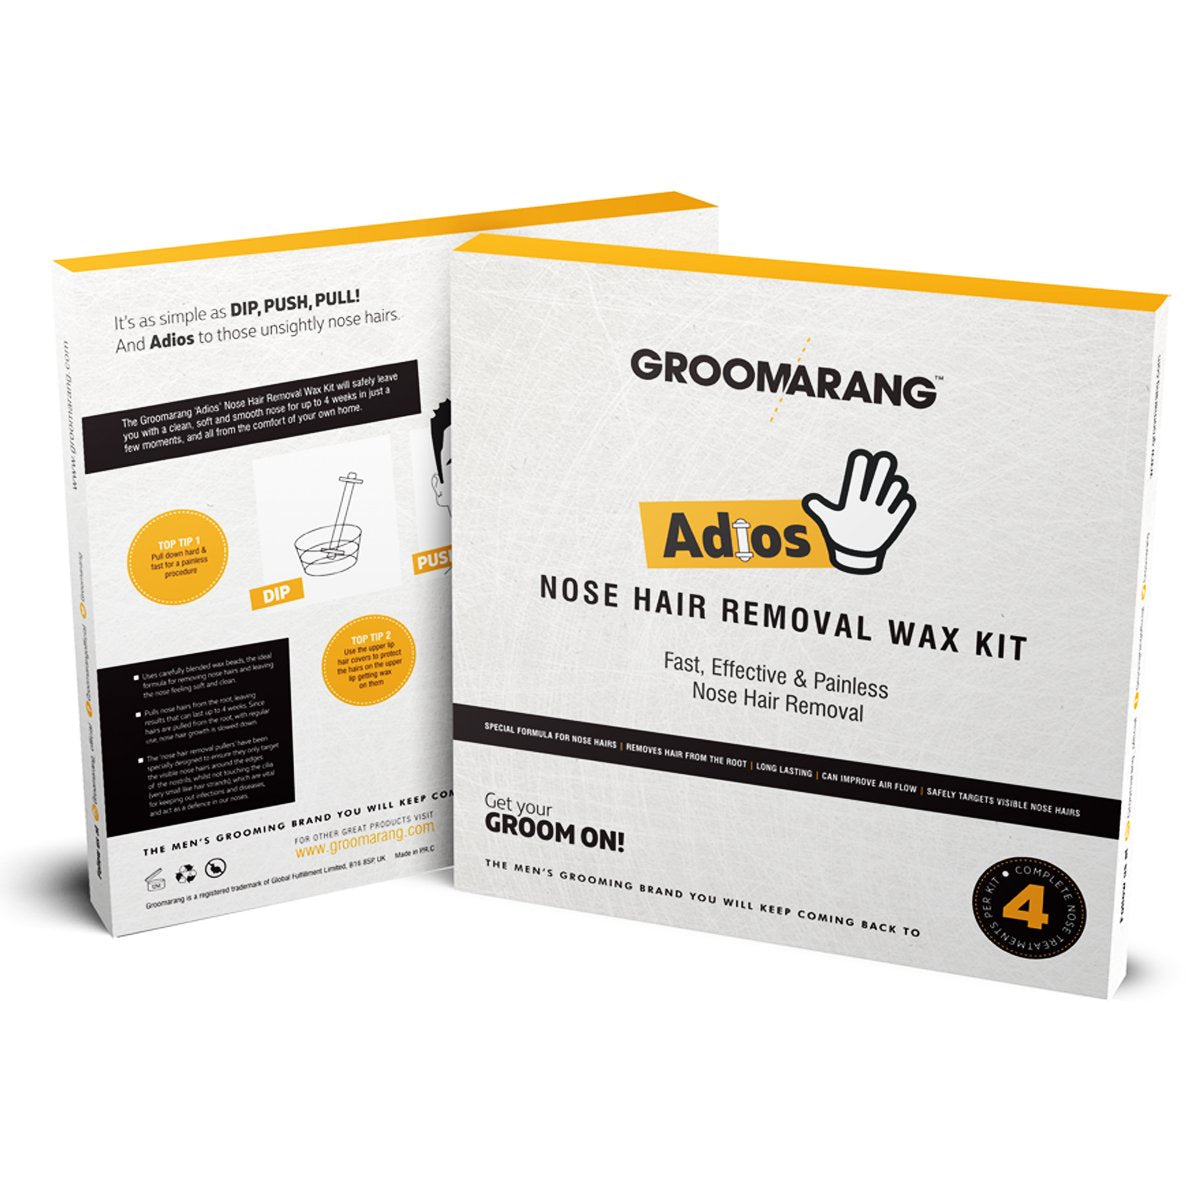 Groomarang Adios Nose Hair Removal Wax Kit, Hair Removal by Forever Cosmetics